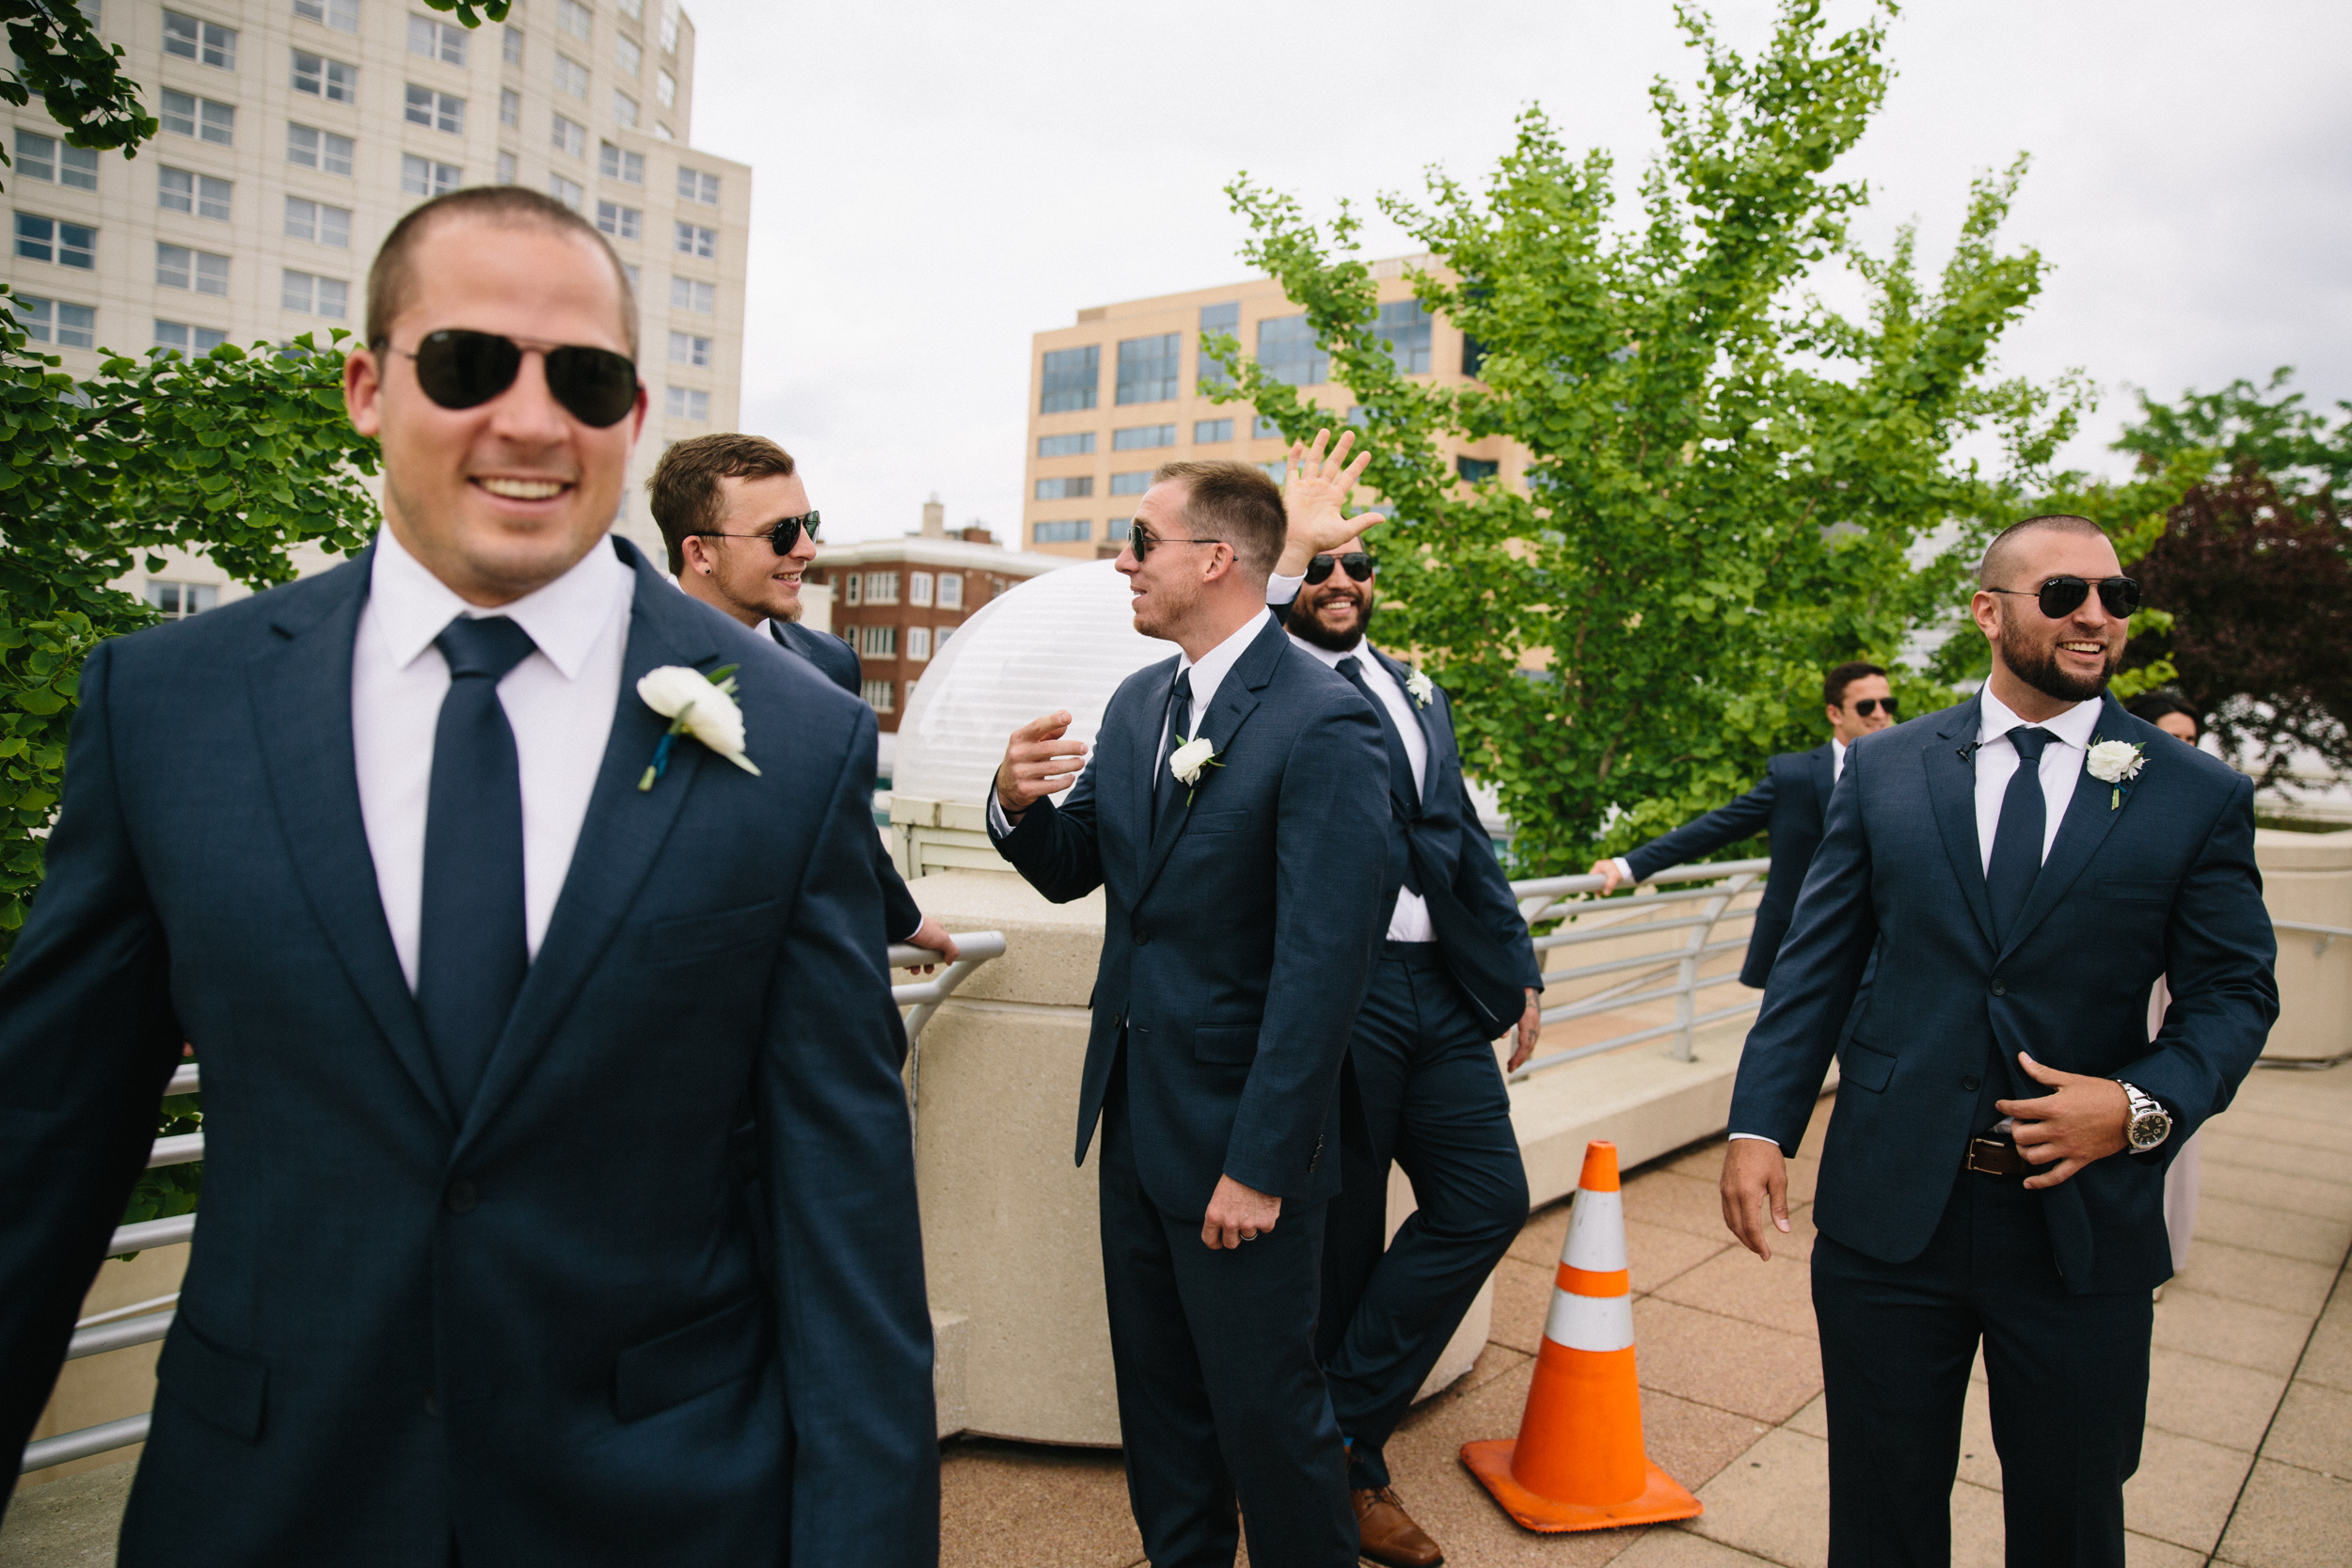 5-27-2017 Lindsay and Eric wedding photography by Brian Milo-110.jpg